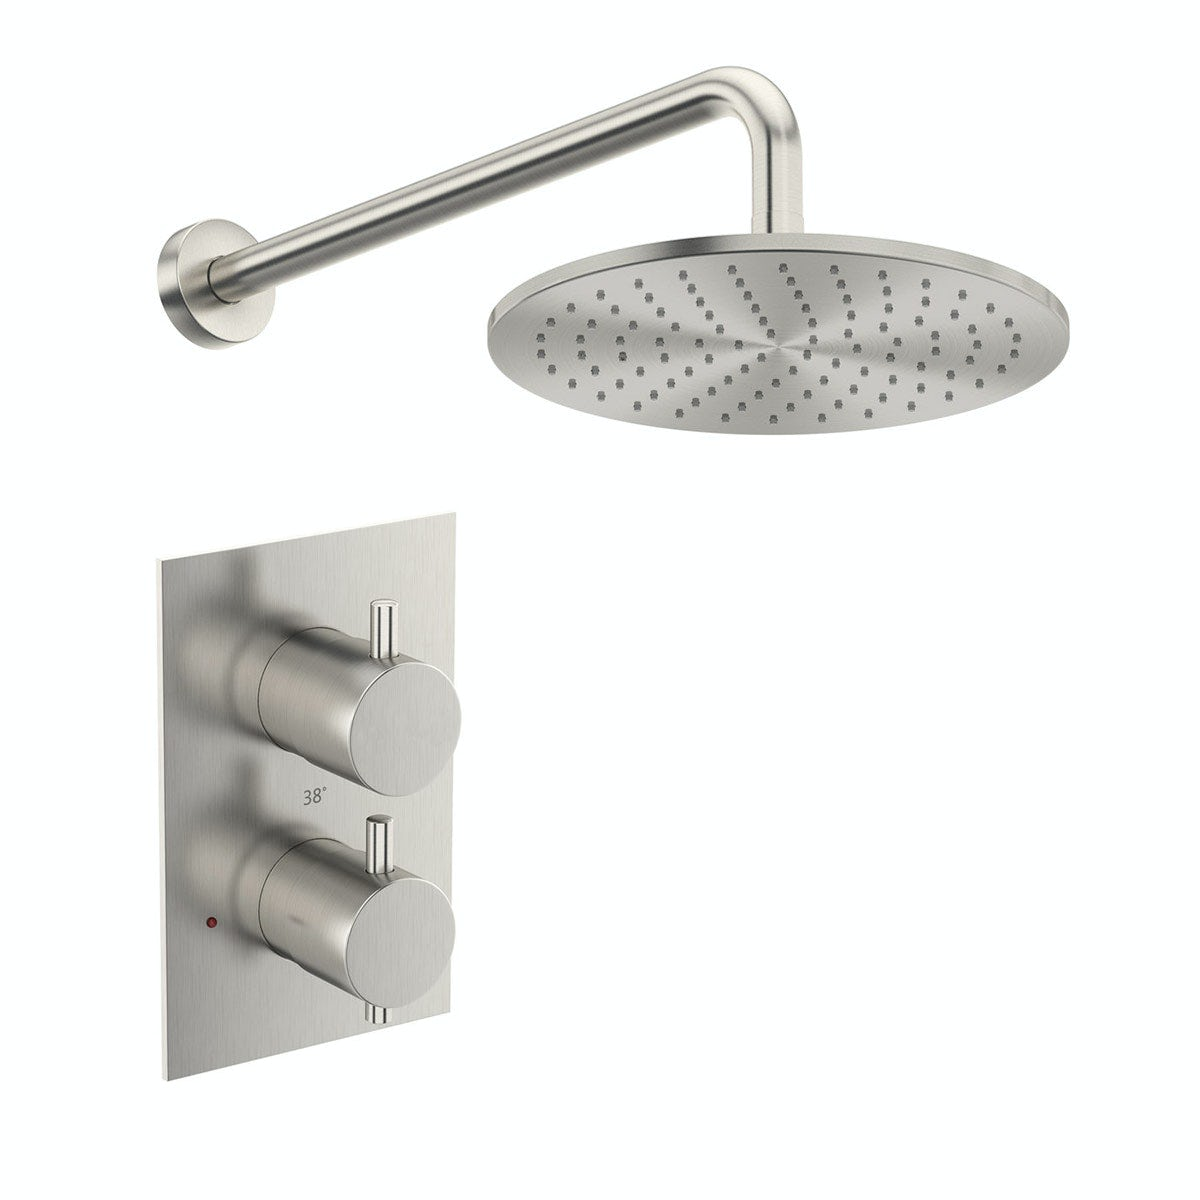 Mode Spencer Round Thermostatic Twin Valve Brushed Nickel Shower Set